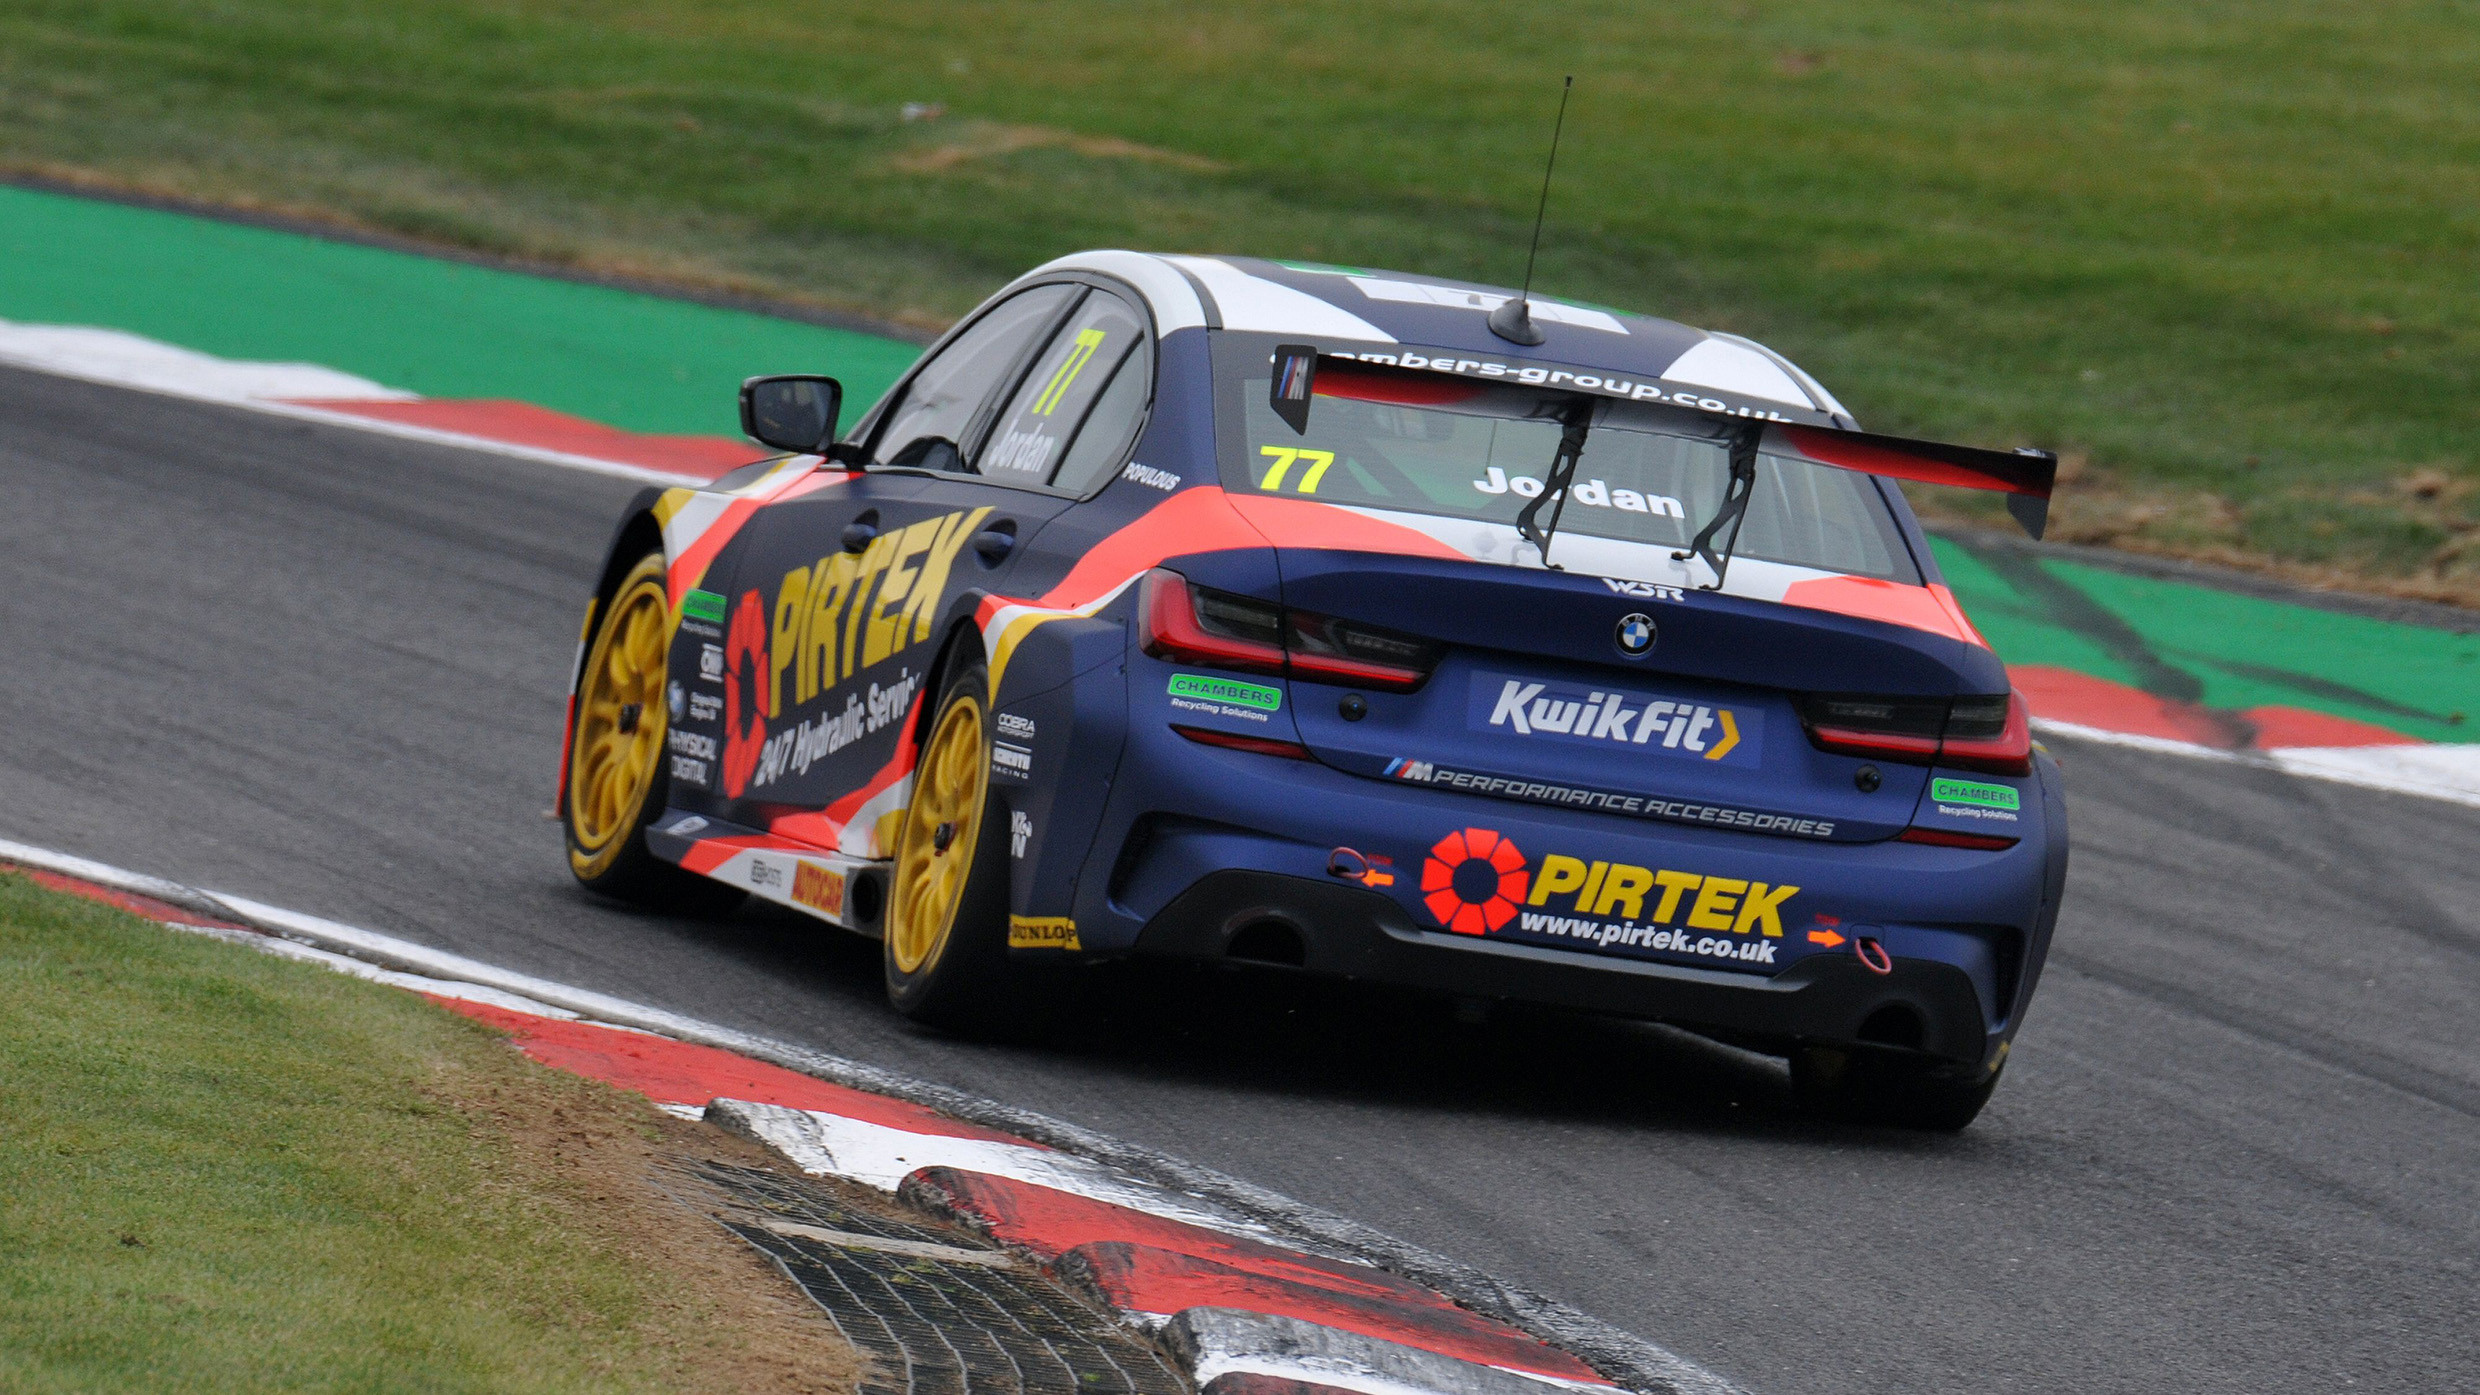 Accident In Surrey Today >> Andrew Jordan ruled out of rest of day at Donington Park - TouringCarTimes